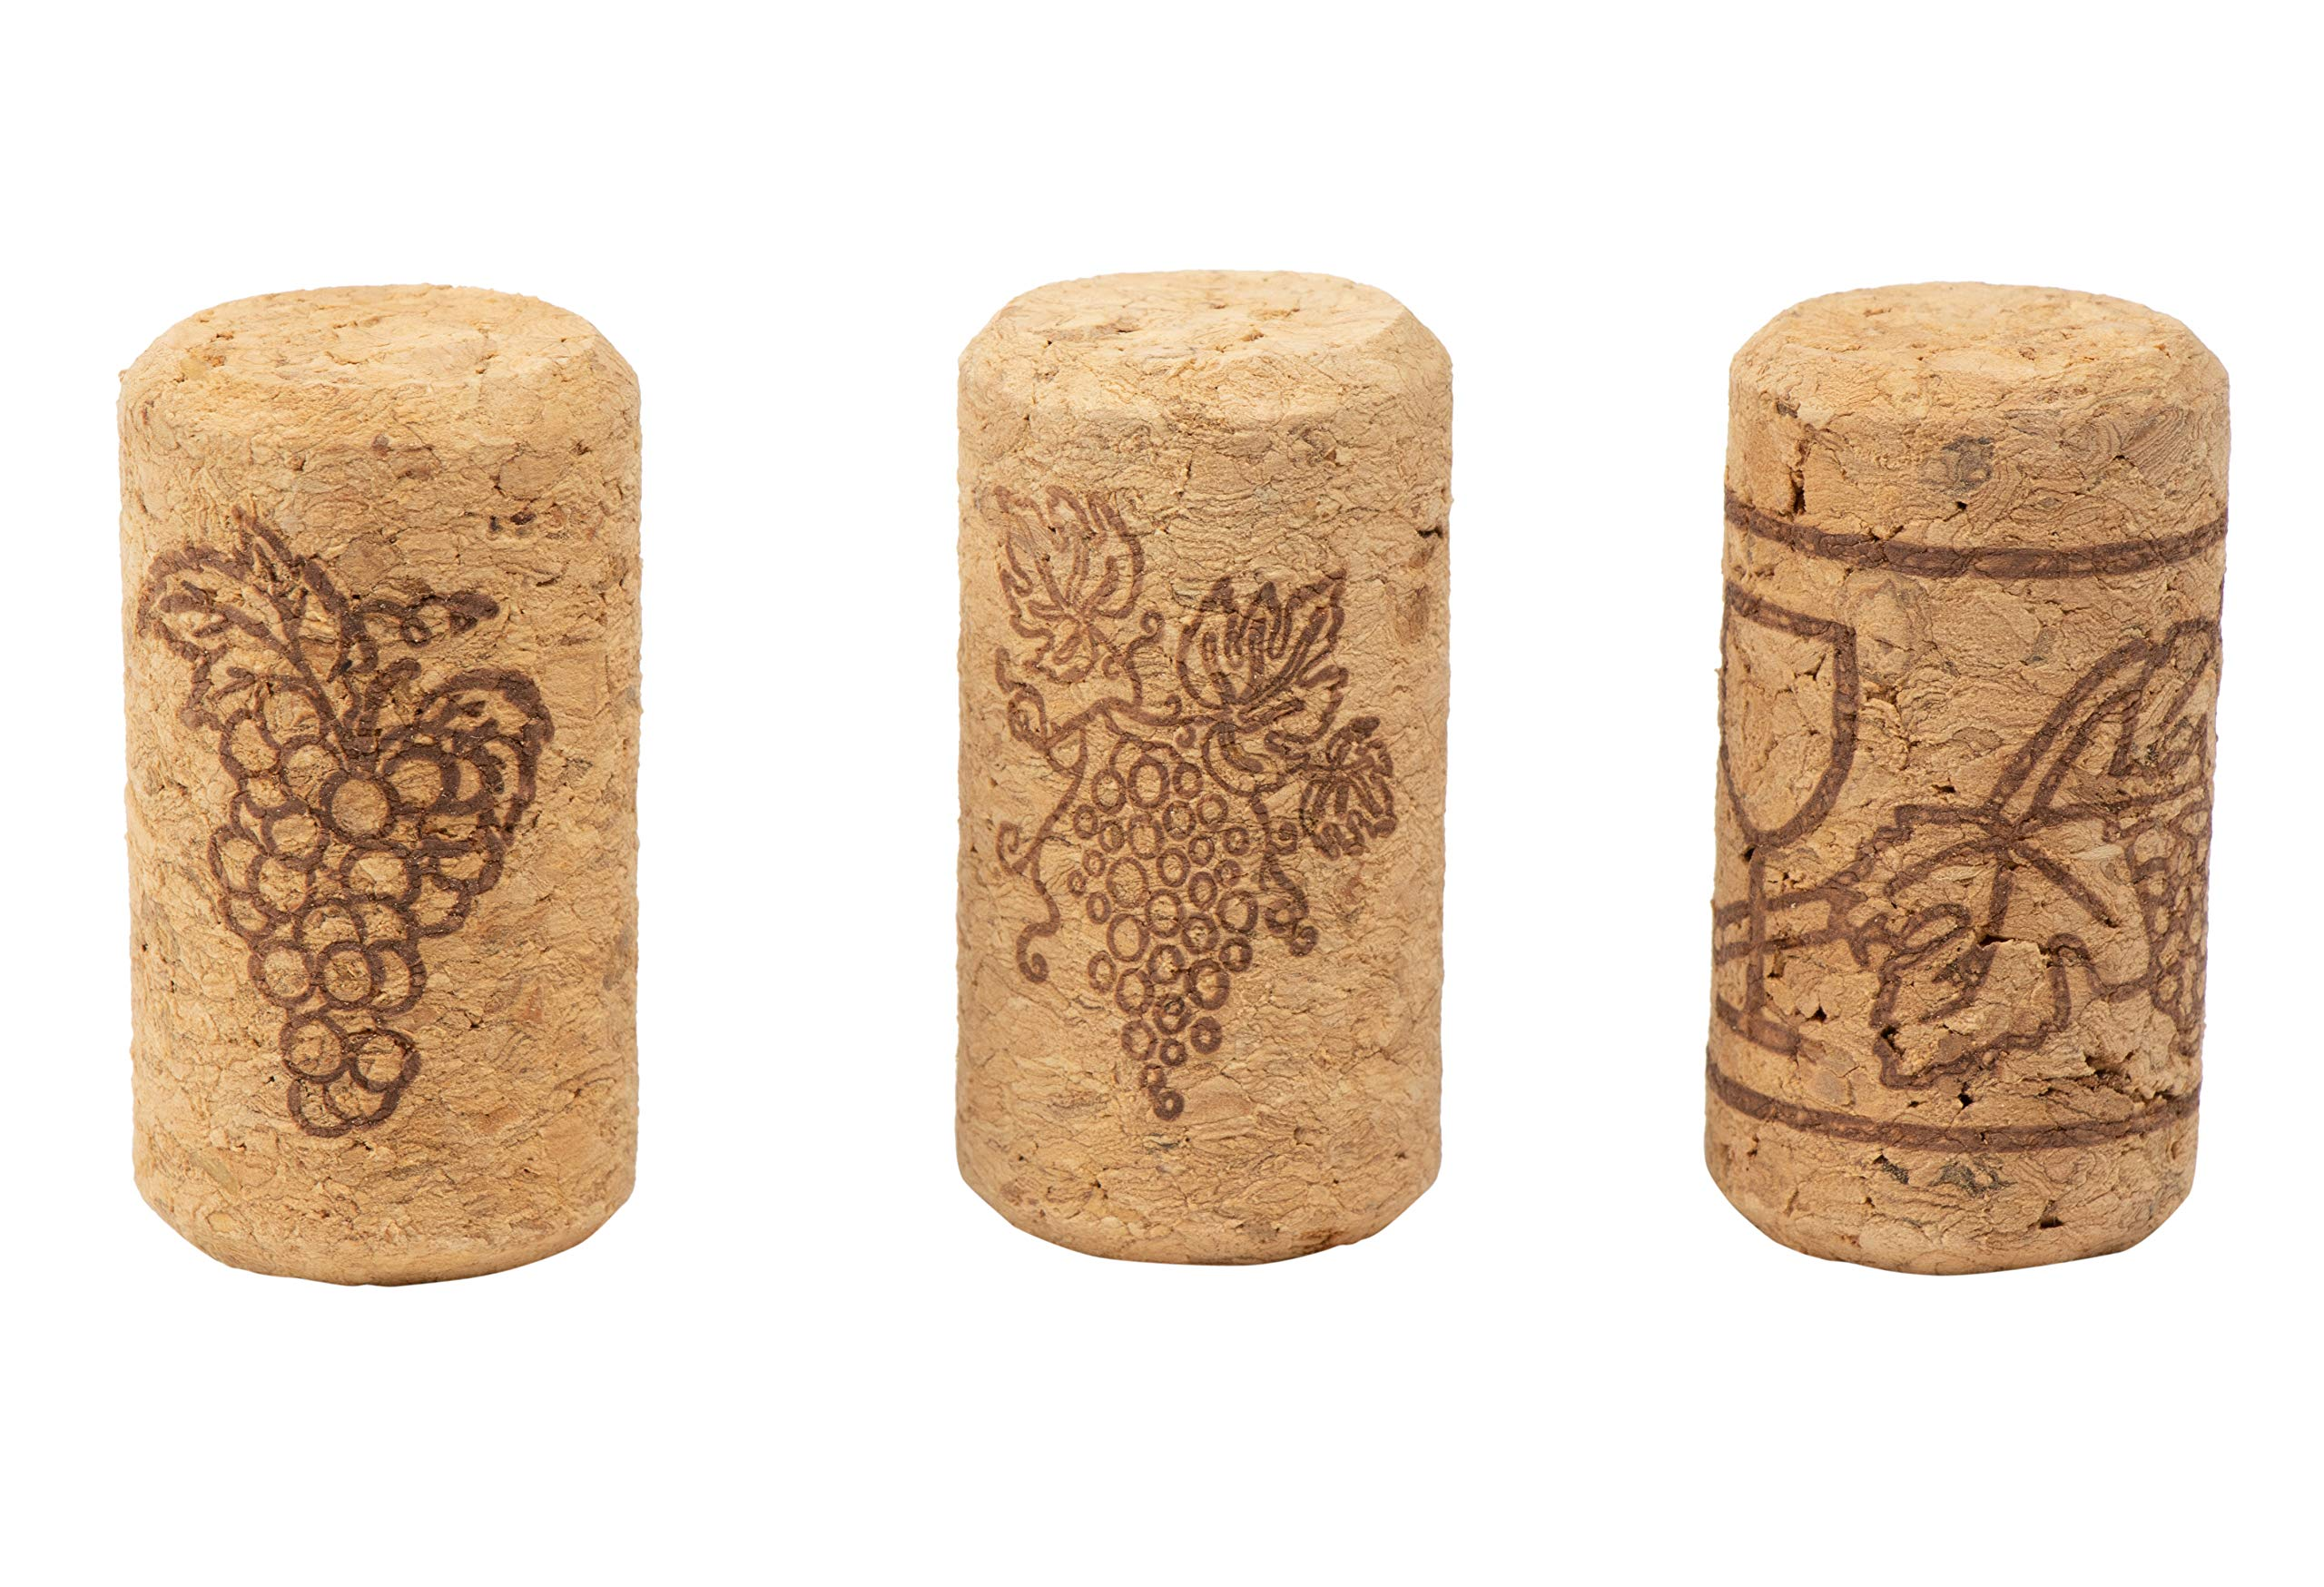 Set of 200 Wine Corks - Bottle Corks with Grape Vine Design, Non-Recycled Straight Corks, Natural Cork Stoppers, Brown - 0.93 x 1.7 Inches by Juvale (Image #4)